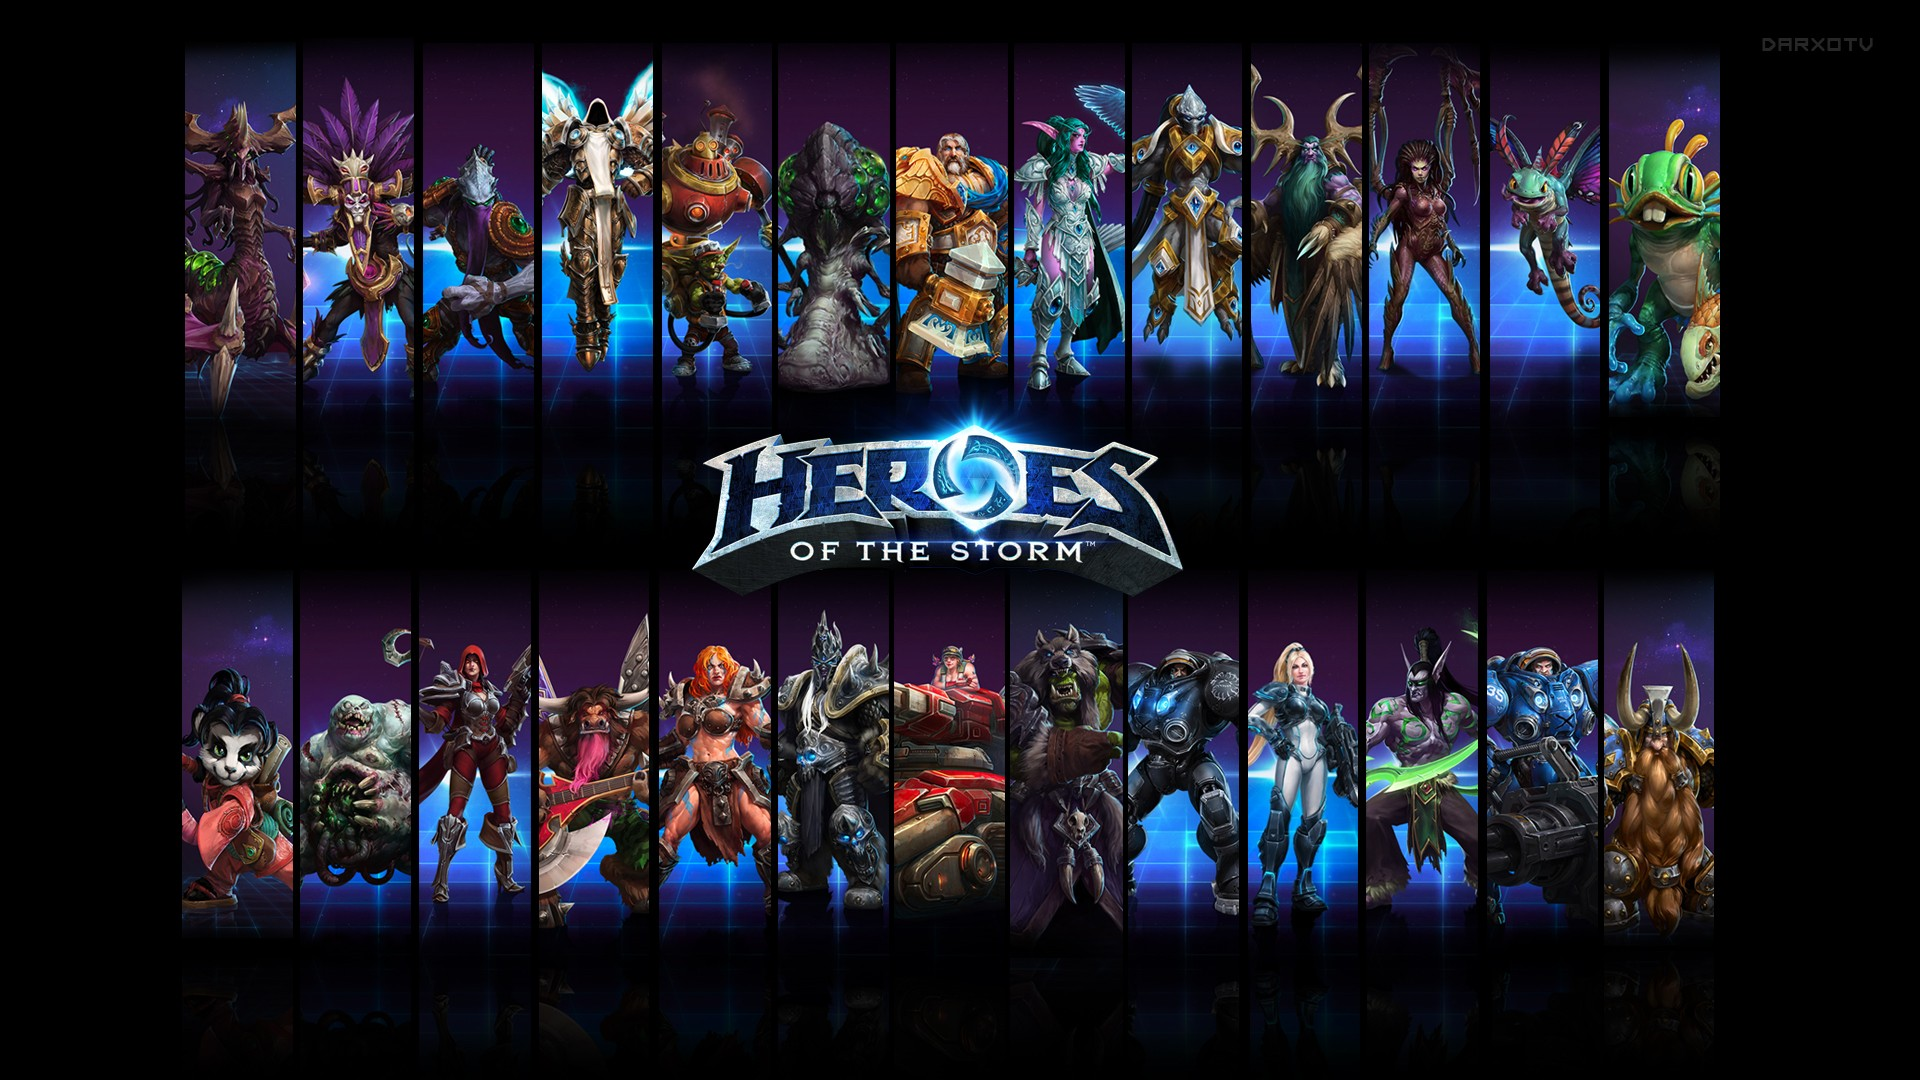 Heroes Of The Storm Wallpaper Download Free Awesome High